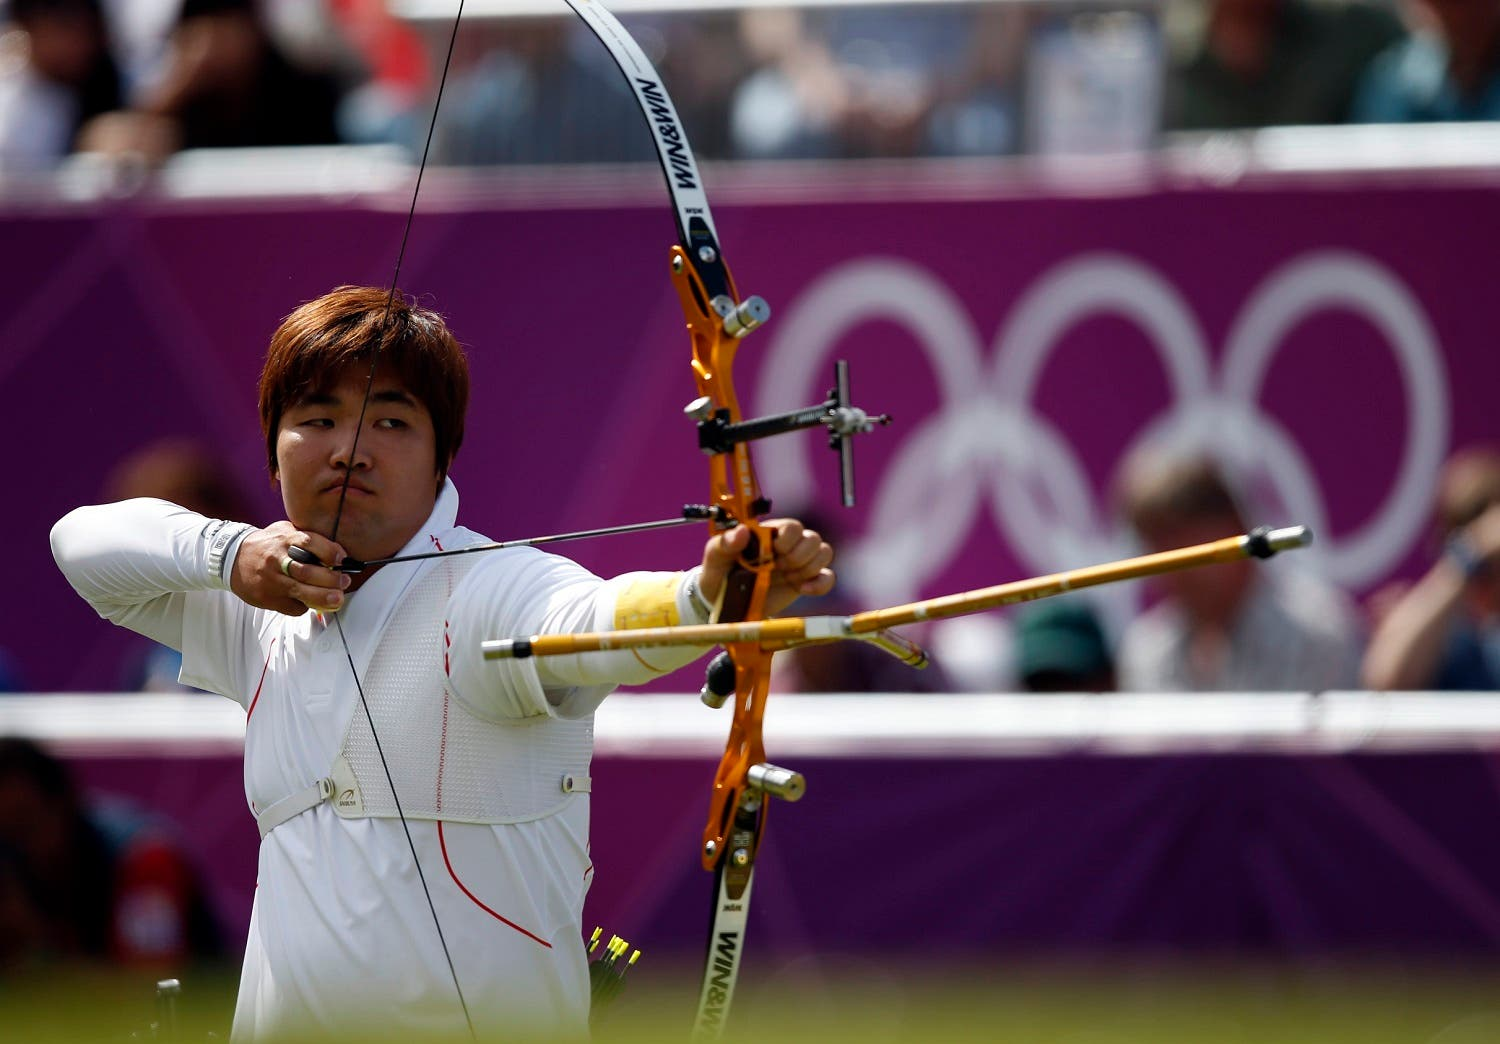 South Korea's Im Dong Hyun takes aim during the men's archery team quaterfinals at the Lords Cricket Ground during the London 2012 Olympics Games July 28, 2012. (Reuters)